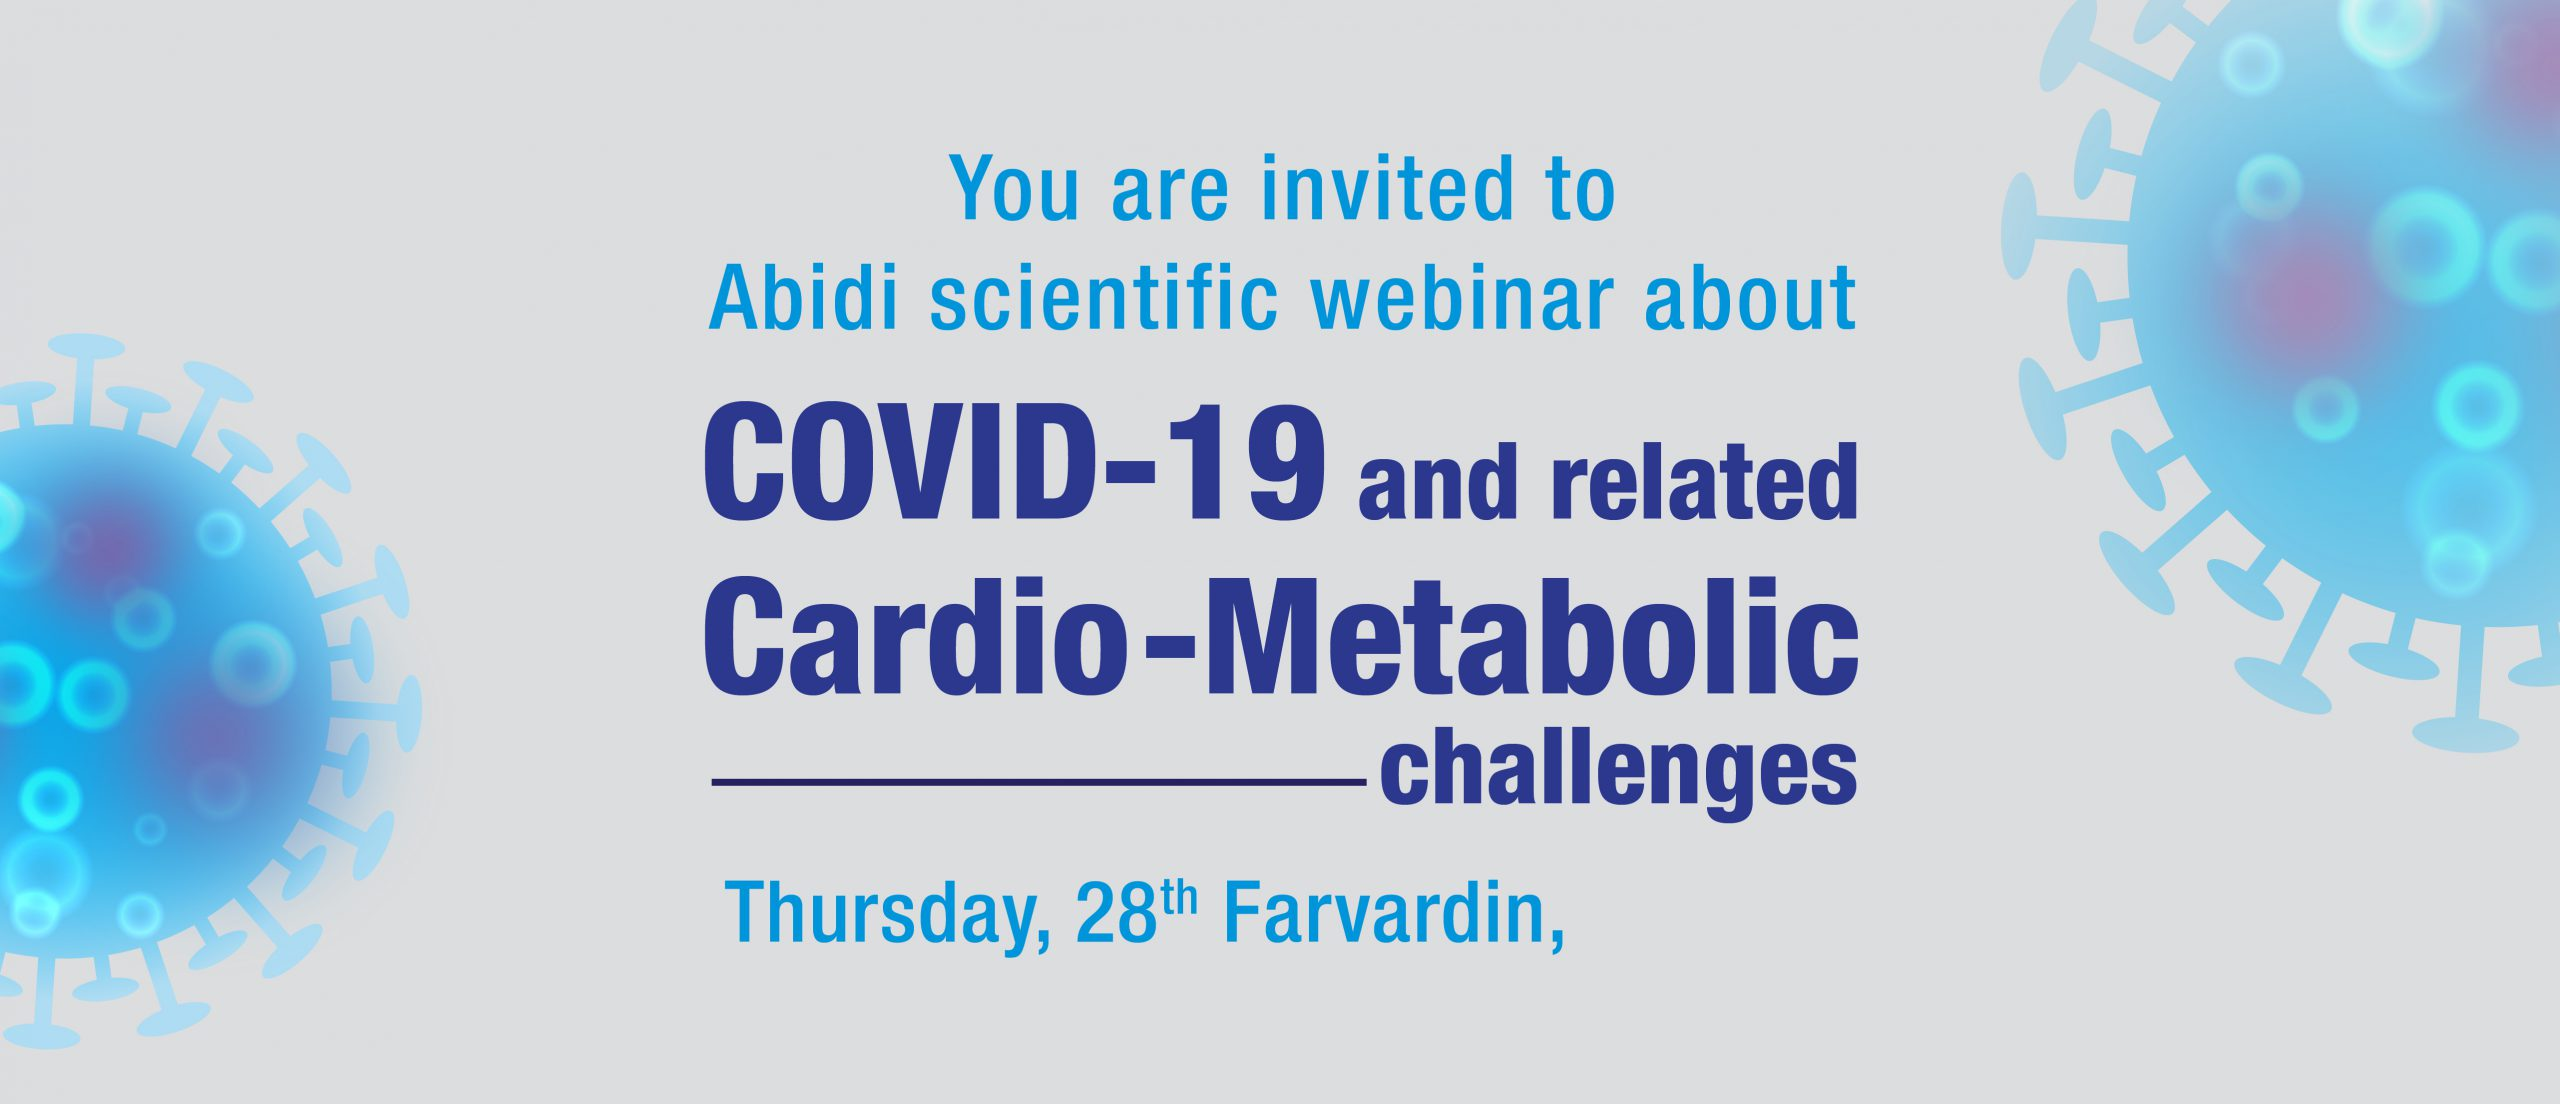 COVID-19 and related Cardio-Metabolic challenges